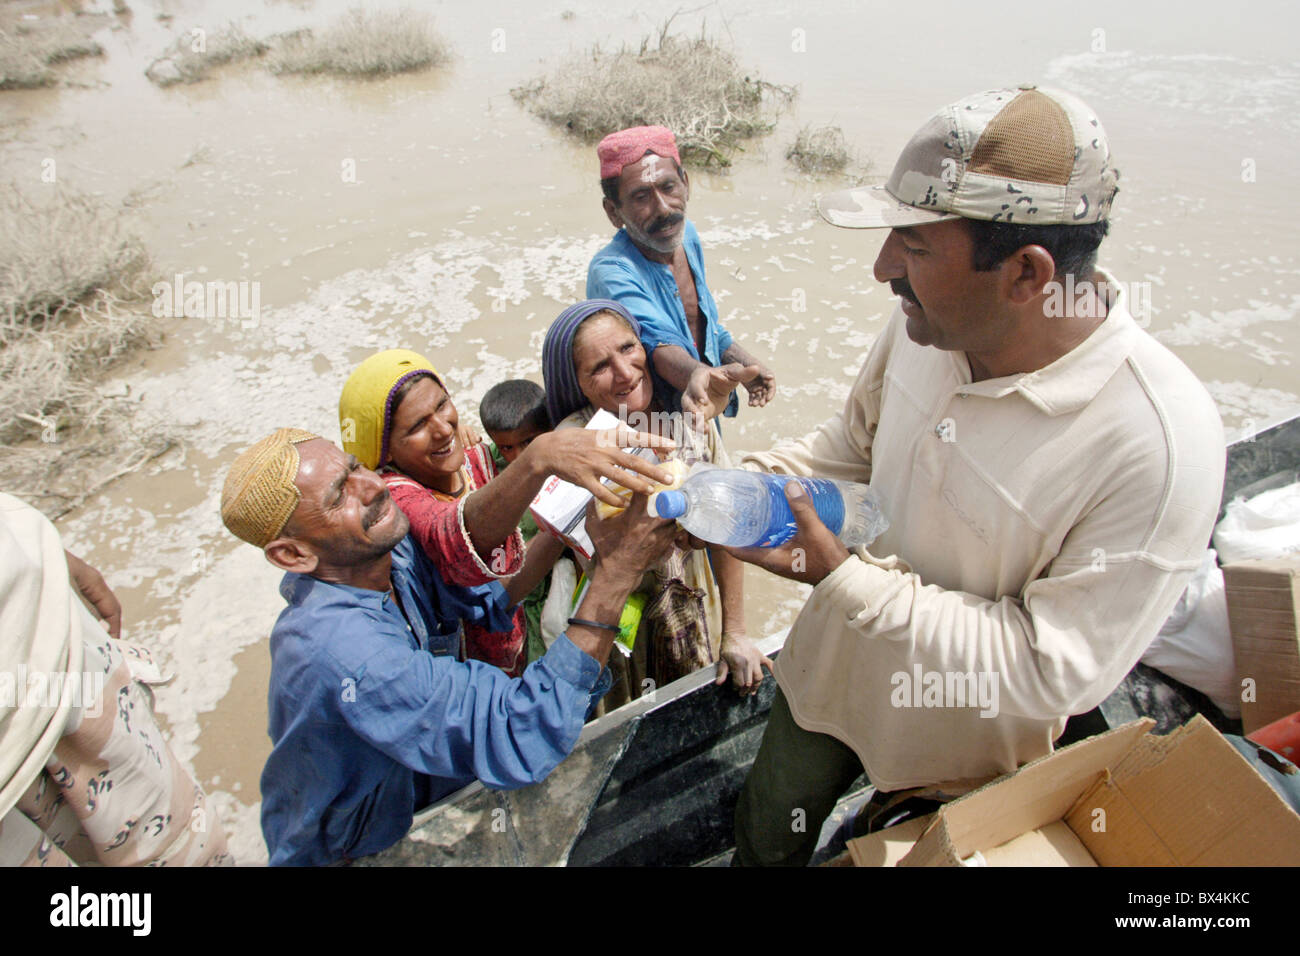 The military distributing relief supplies to flood victims, Shadhat Kot, Pakistan - Stock Image